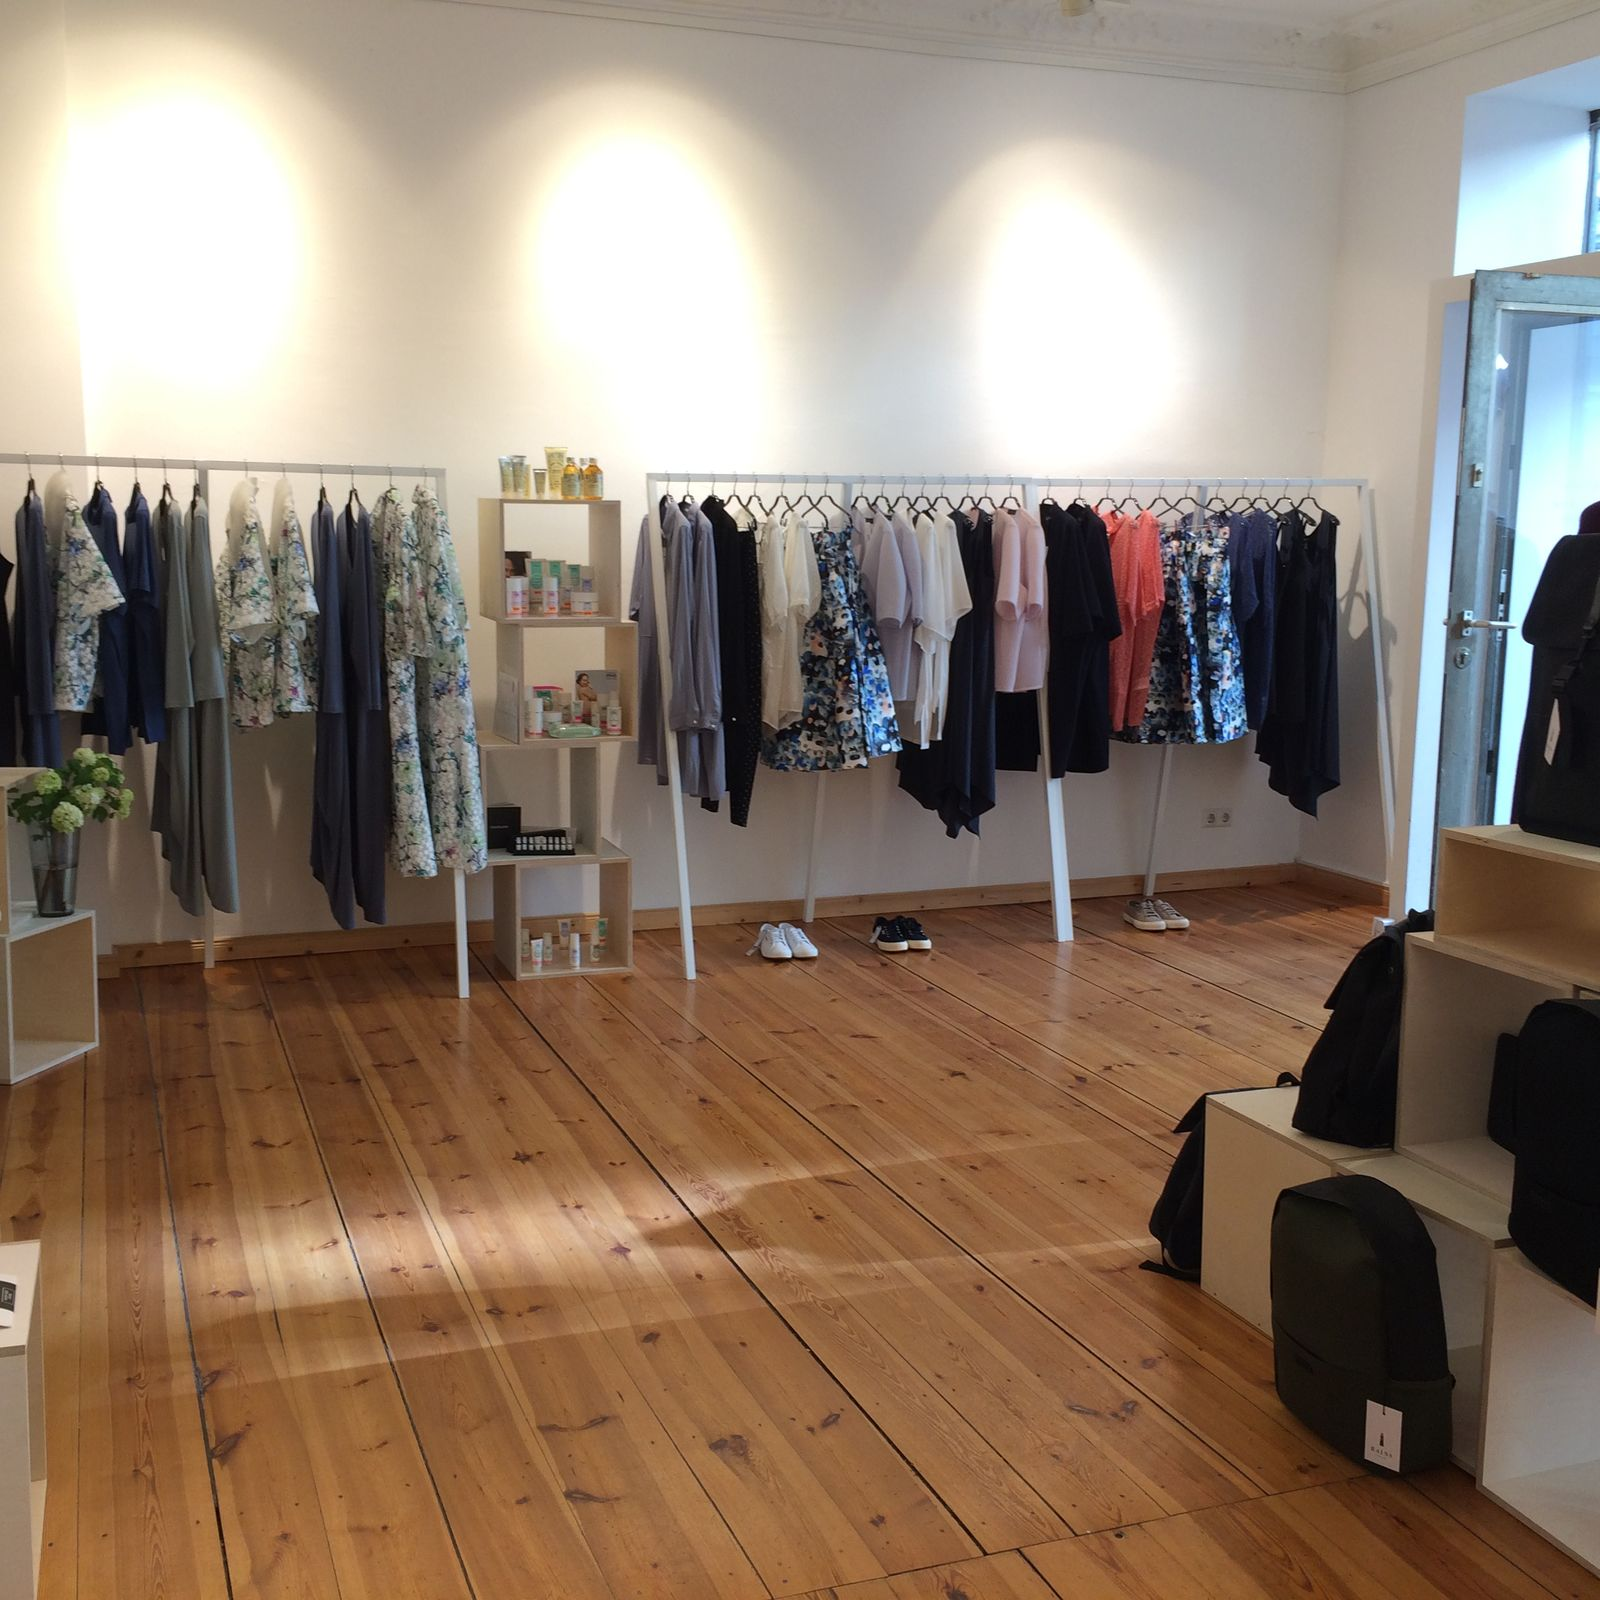 Les Soeurs Shop - The Curvy Concept Store in Berlin (Bild 6)